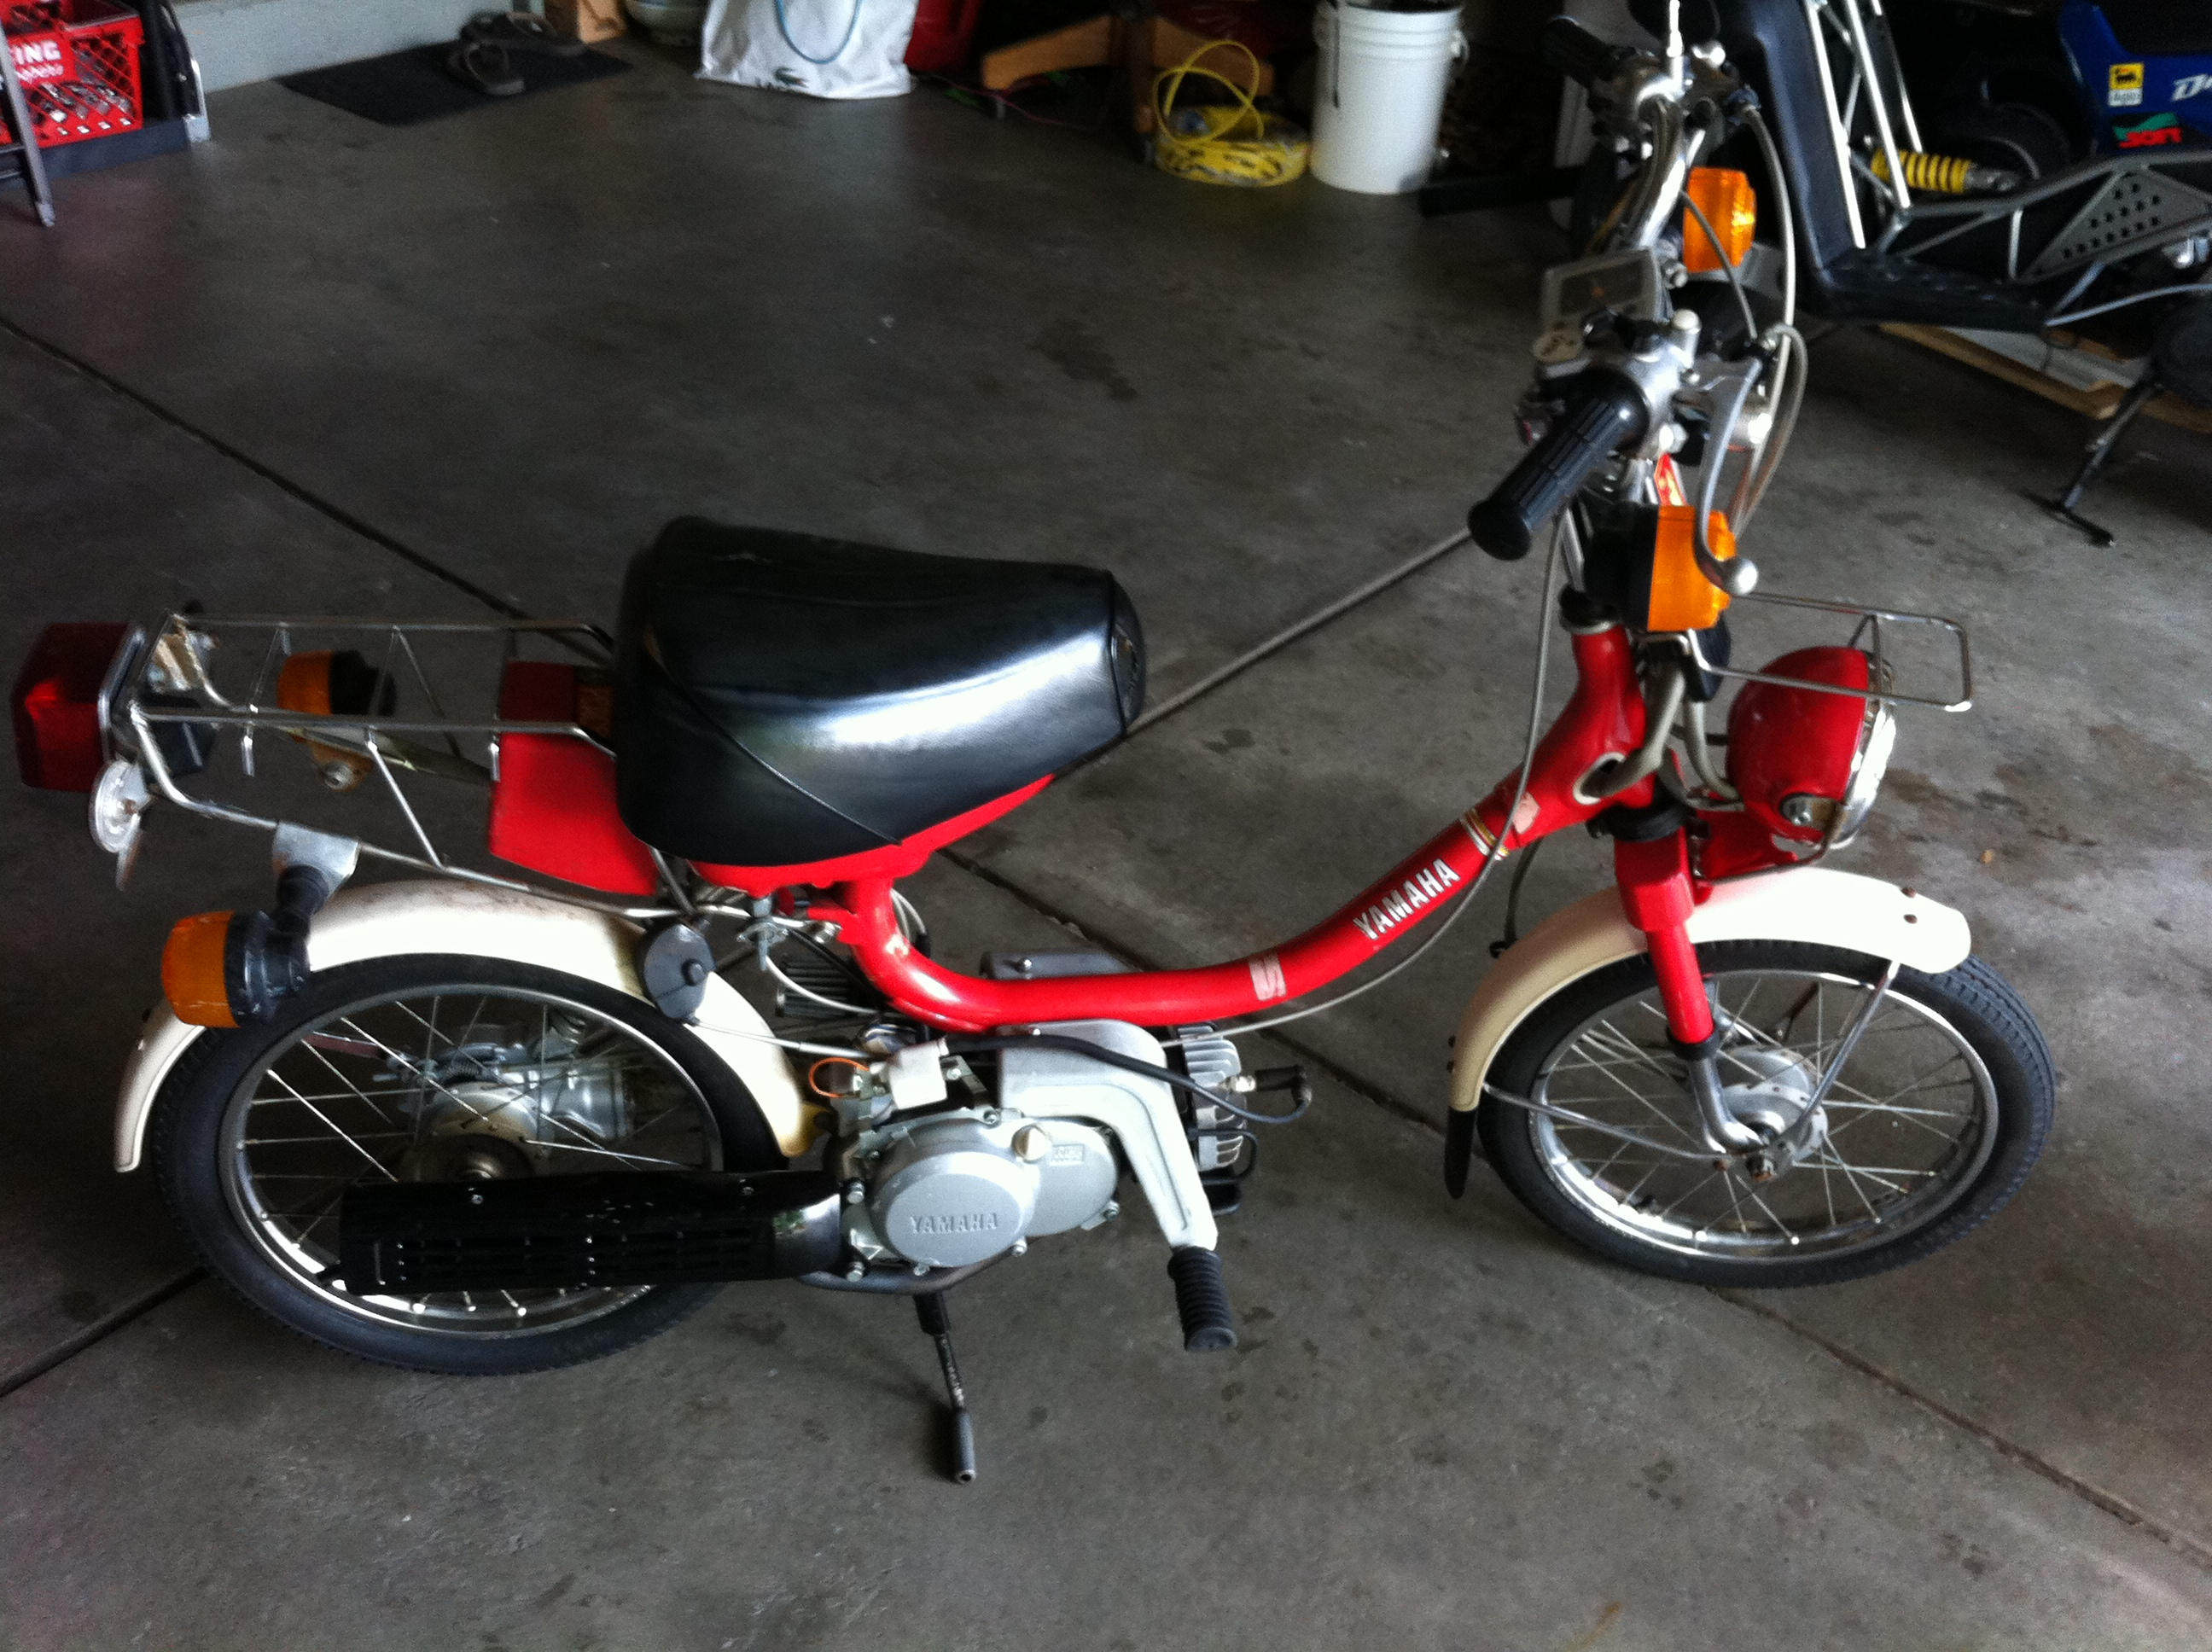 WTB-- Malossi 70cc kit for qt50 yamahopper — Moped Army